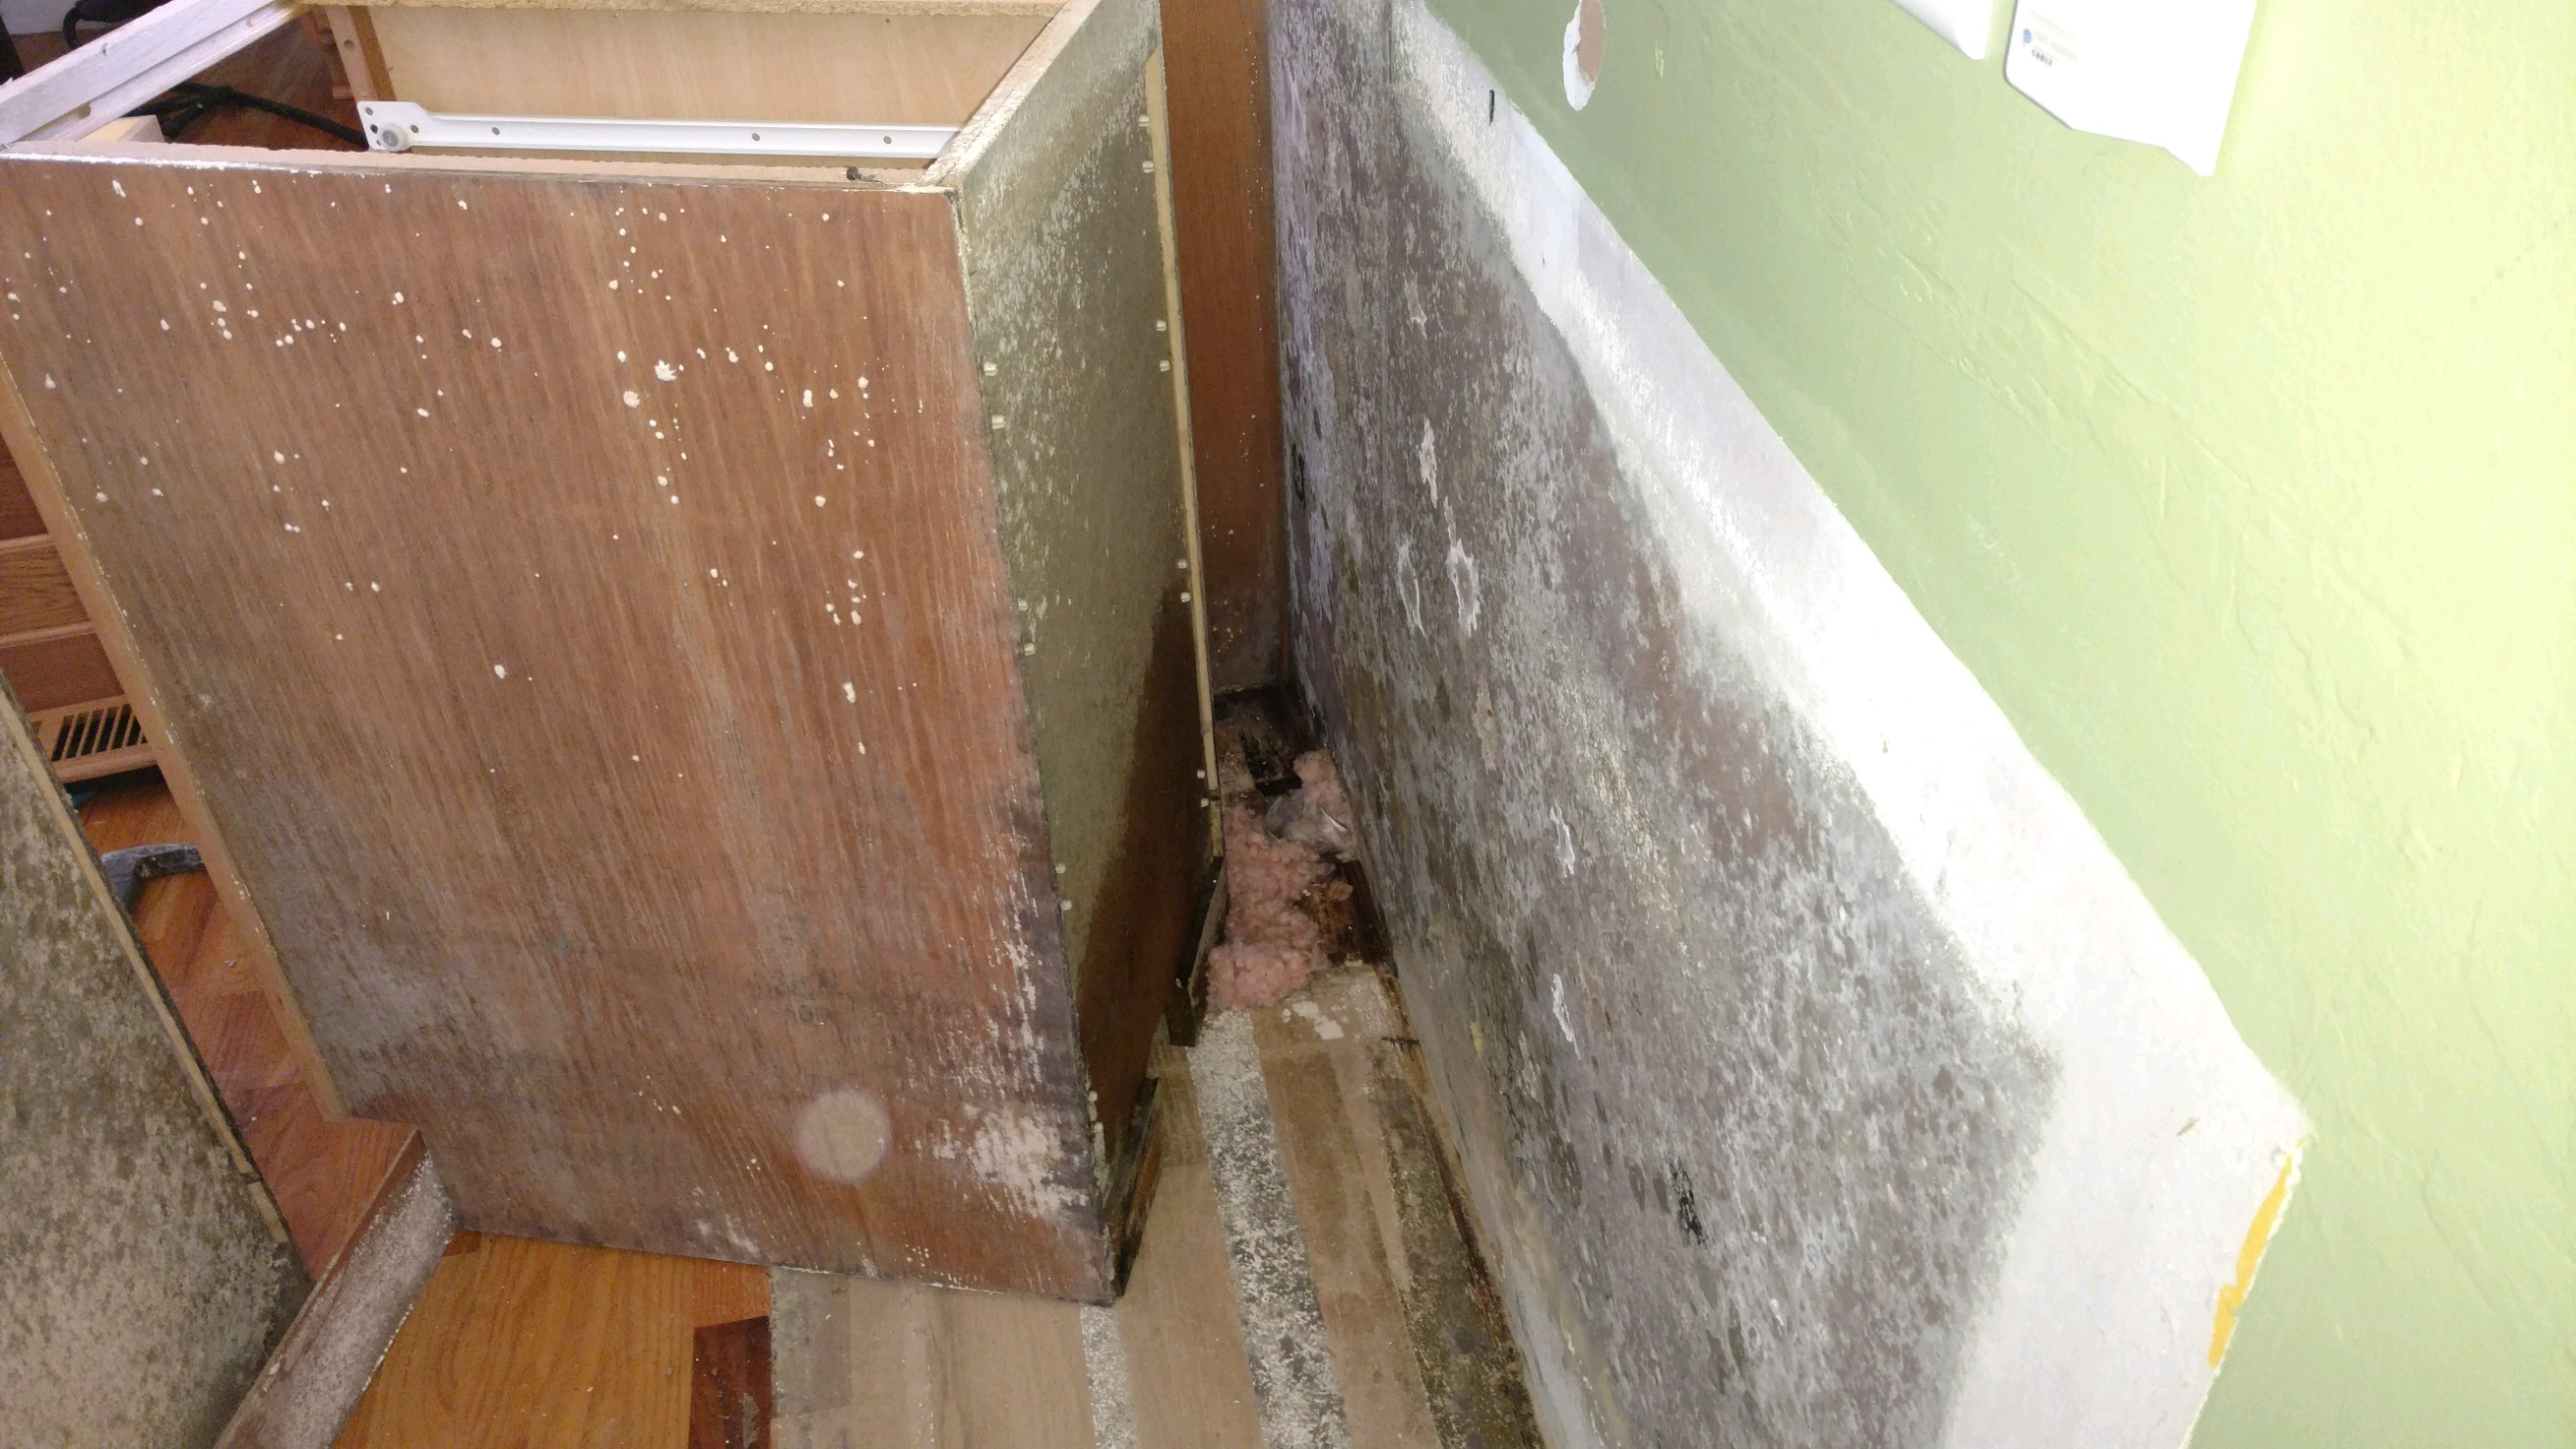 Mold Growth Beside and Behind Cabinet